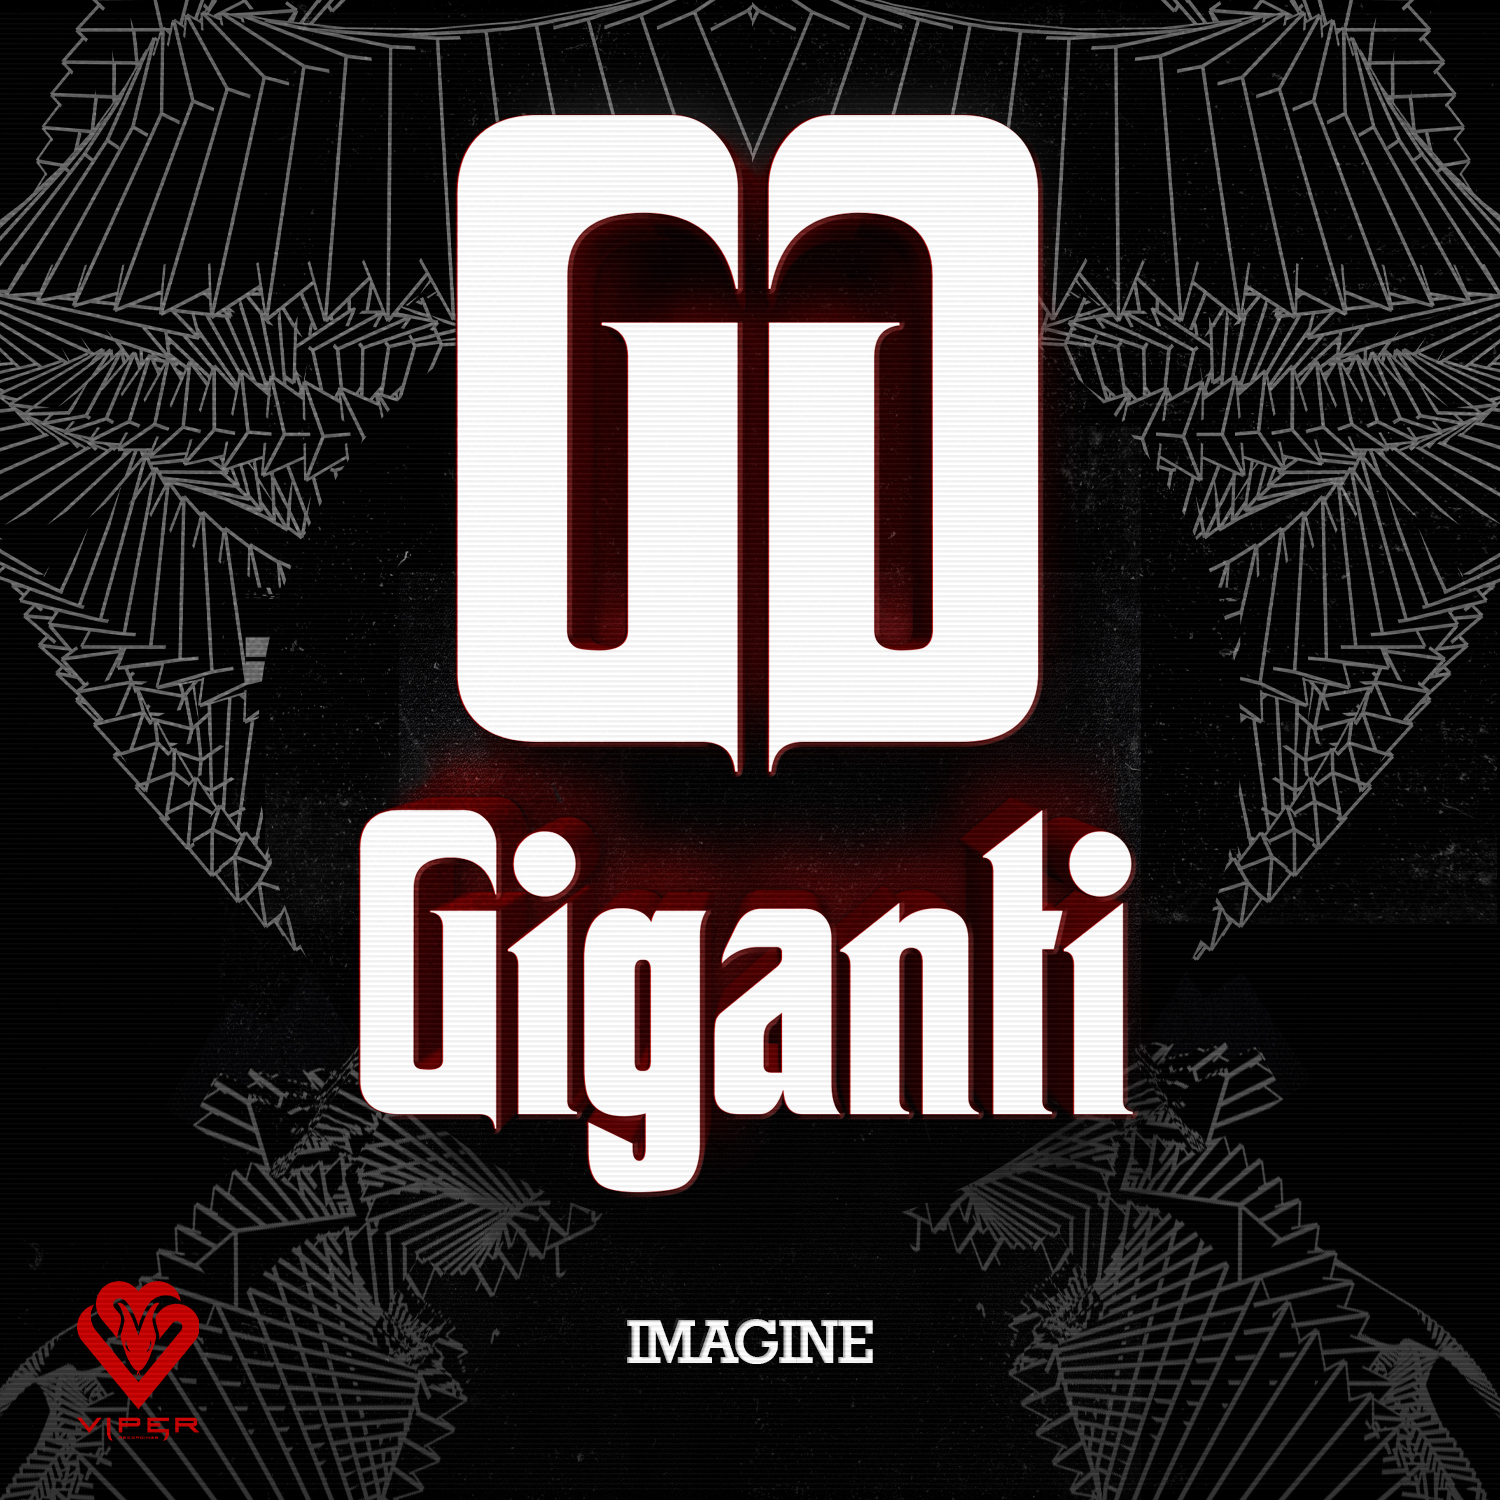 Giganti - Imagine [VPR218]